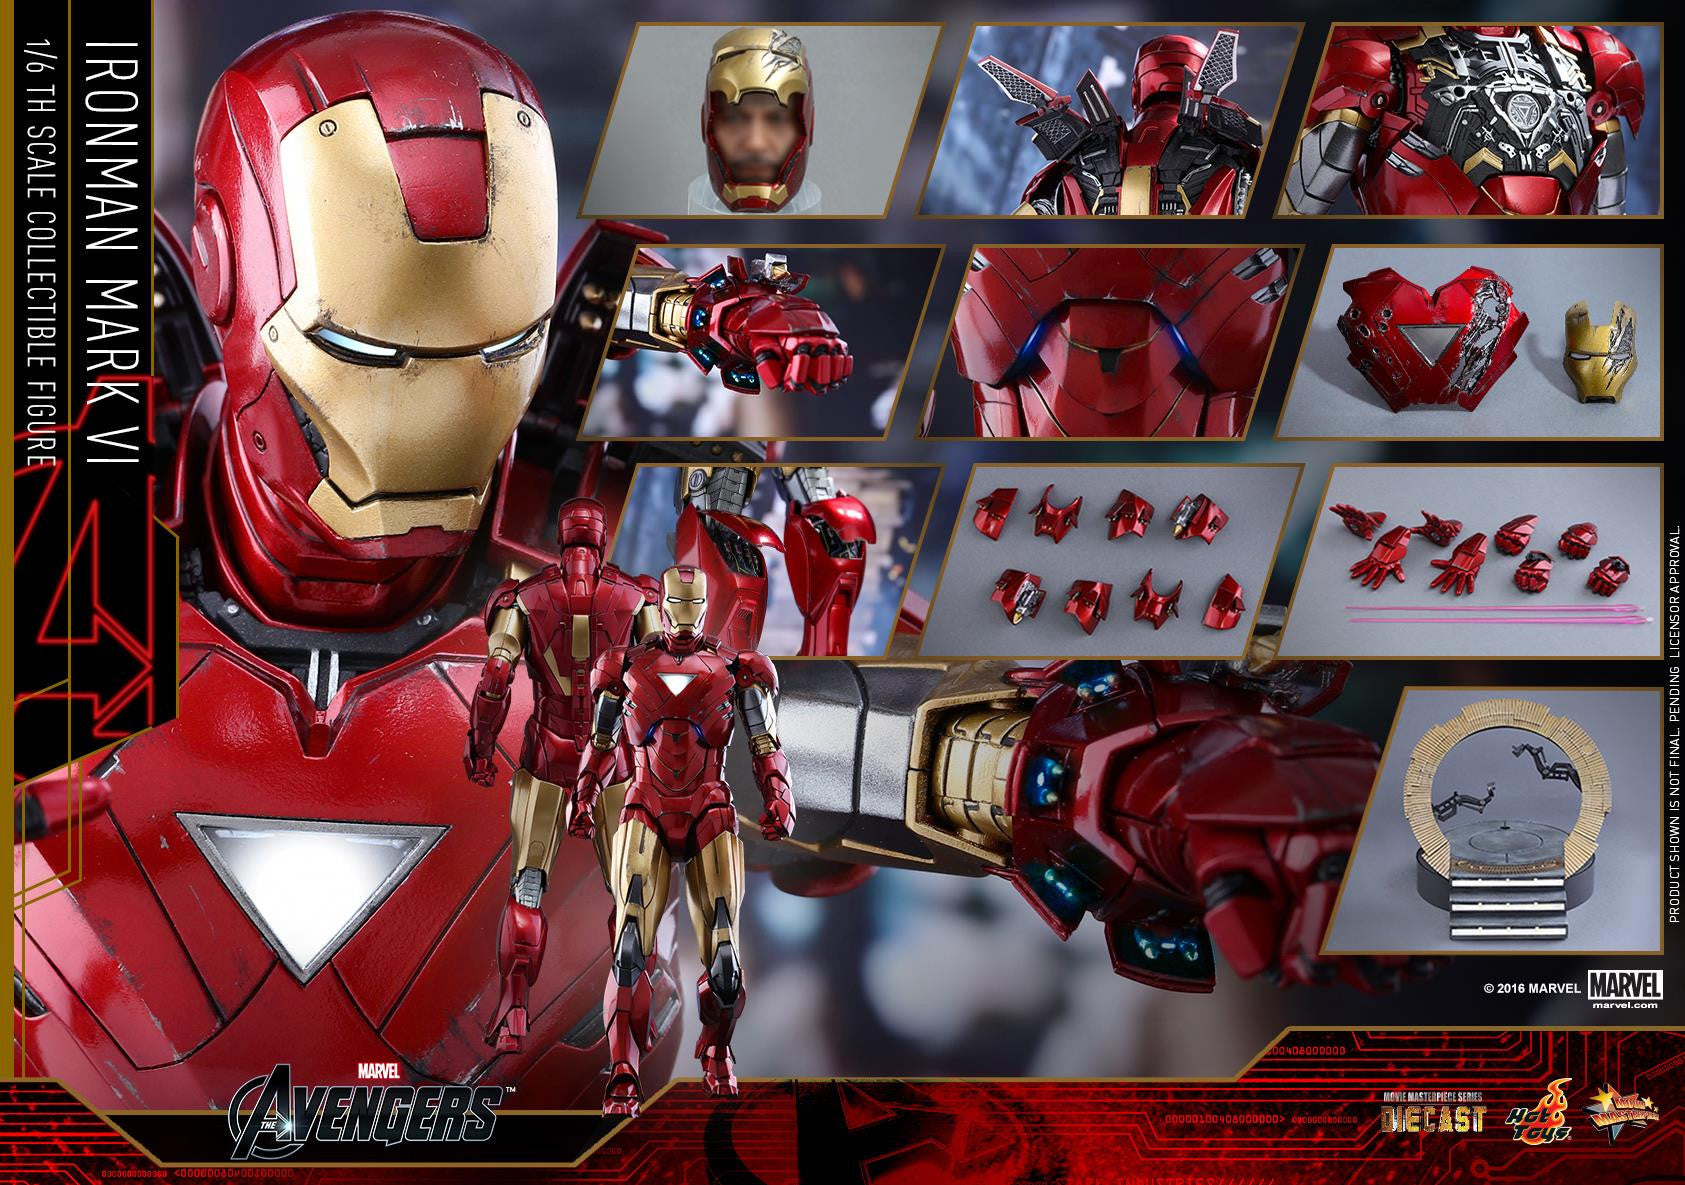 Hot Toys - MMS378D17 - The Avengers - Iron Man Mark VI (DIECAST) (Normal Edition) - Marvelous Toys - 23